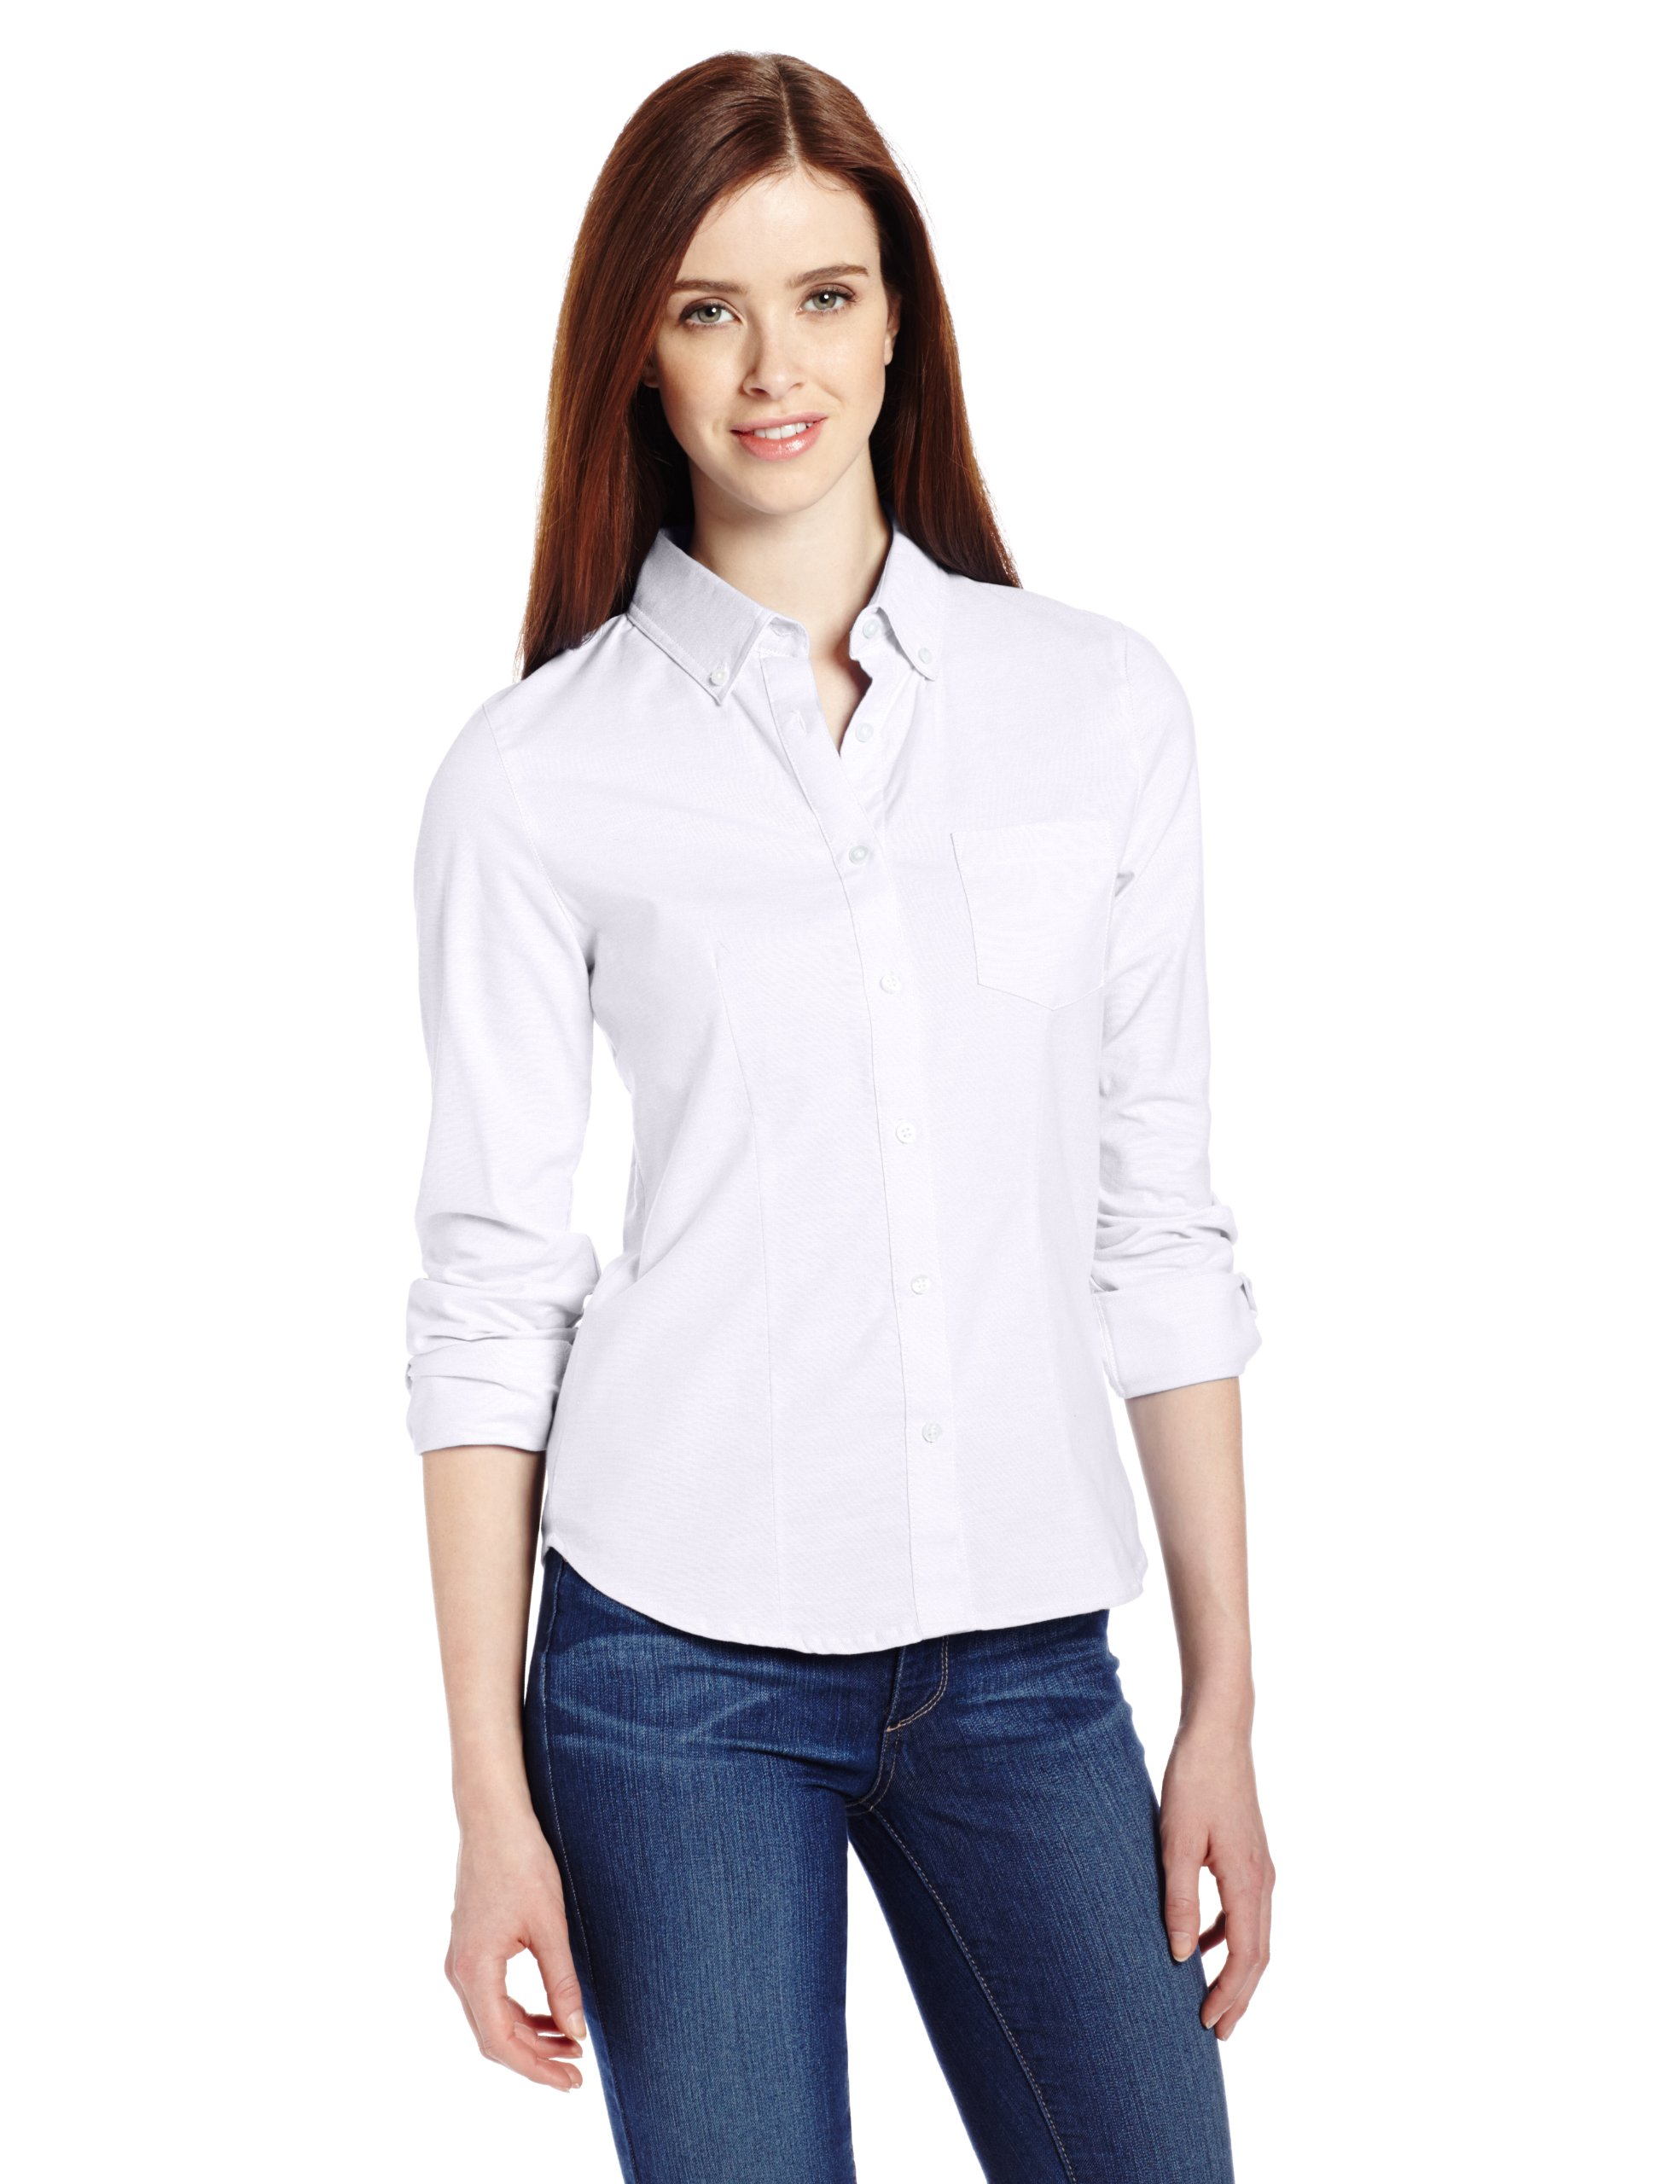 LEE Juniors Plus Size Long Sleeve Stretch Oxford Blouse, White, XX-Large